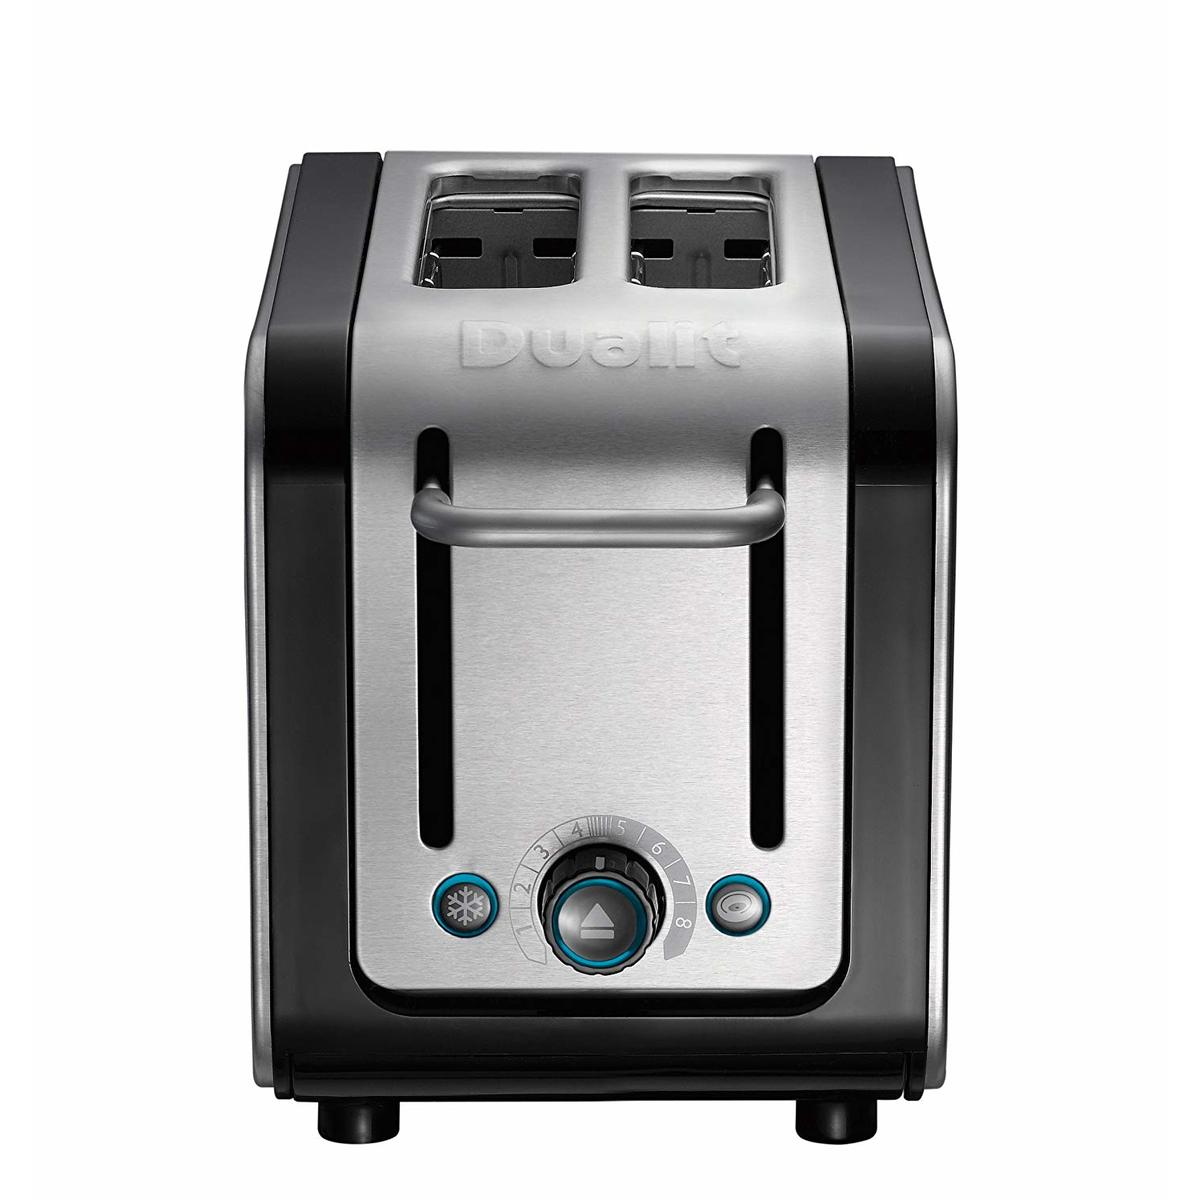 Image of Dualit 26505 ARCHITECT 2 Slot Toaster, Black/Stainless Steel